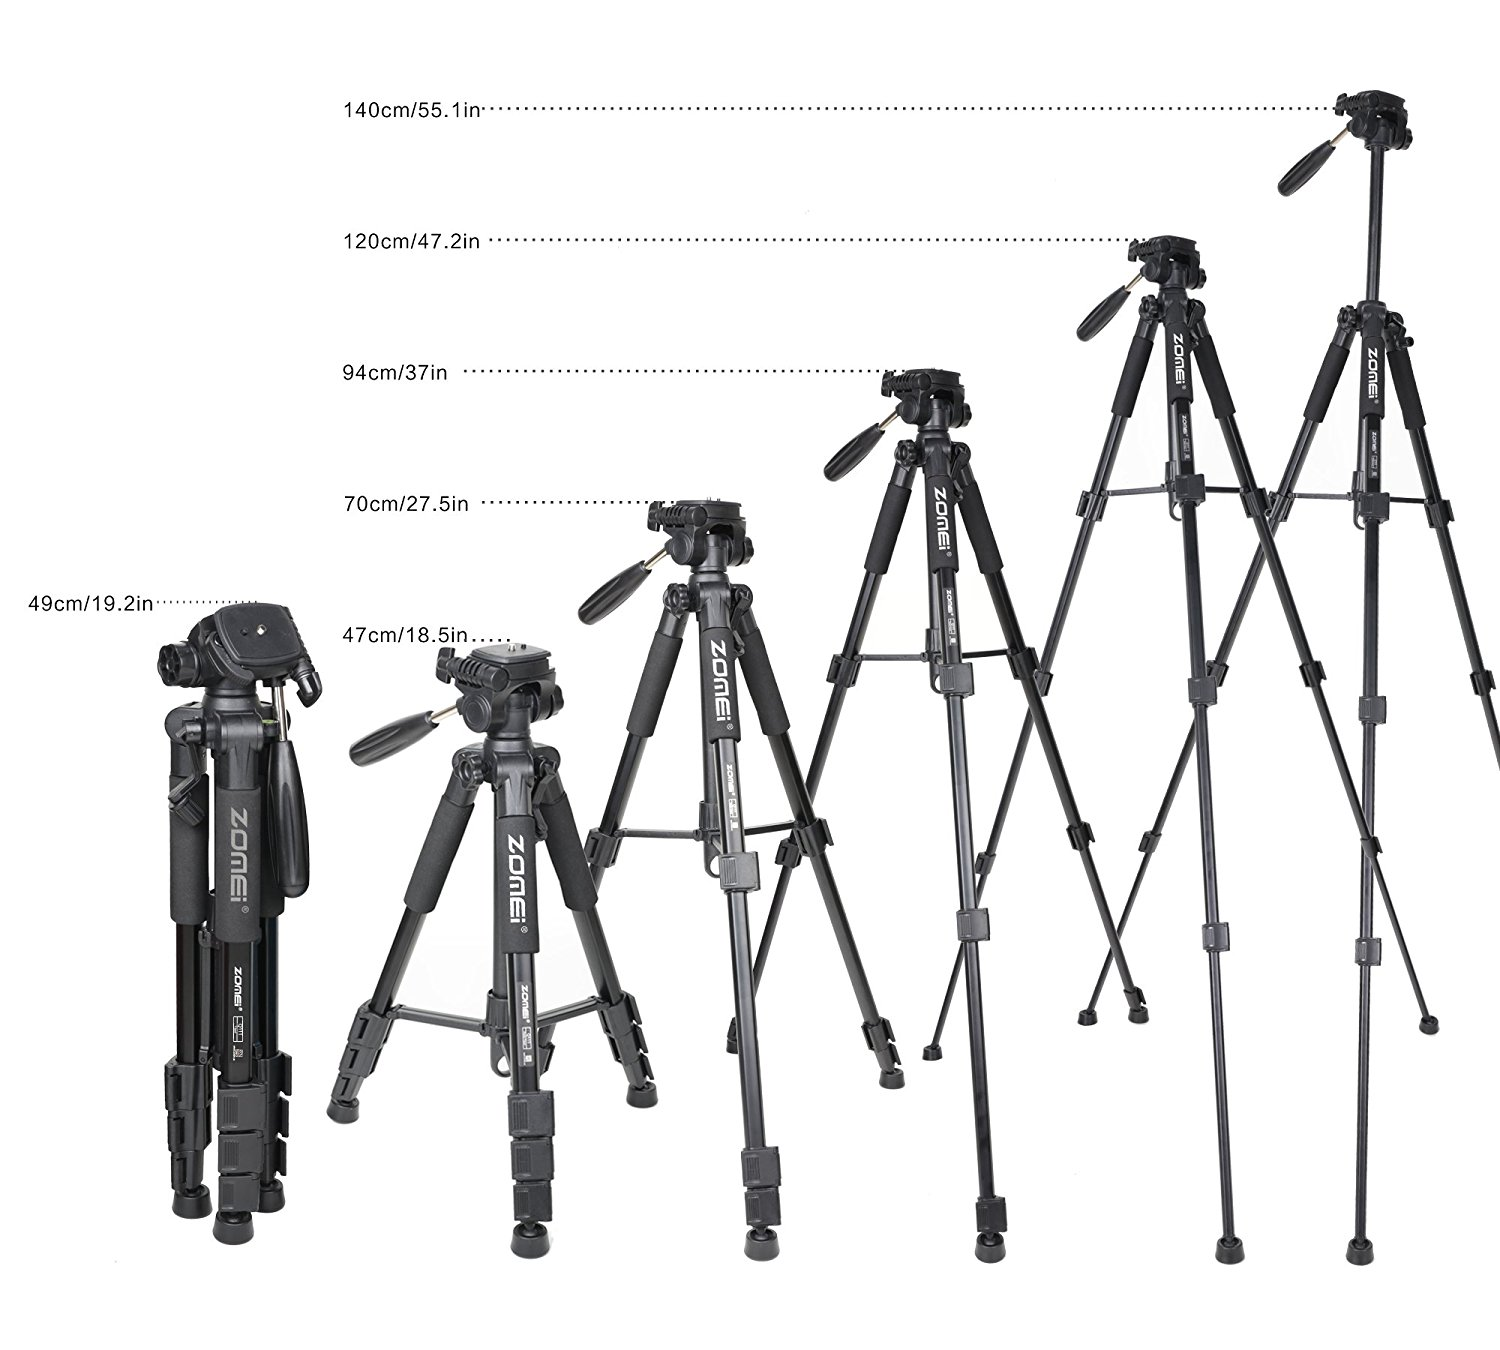 Portable ZOMEI Q111 Al-Alloy Camera Tripod for DSLR Canon